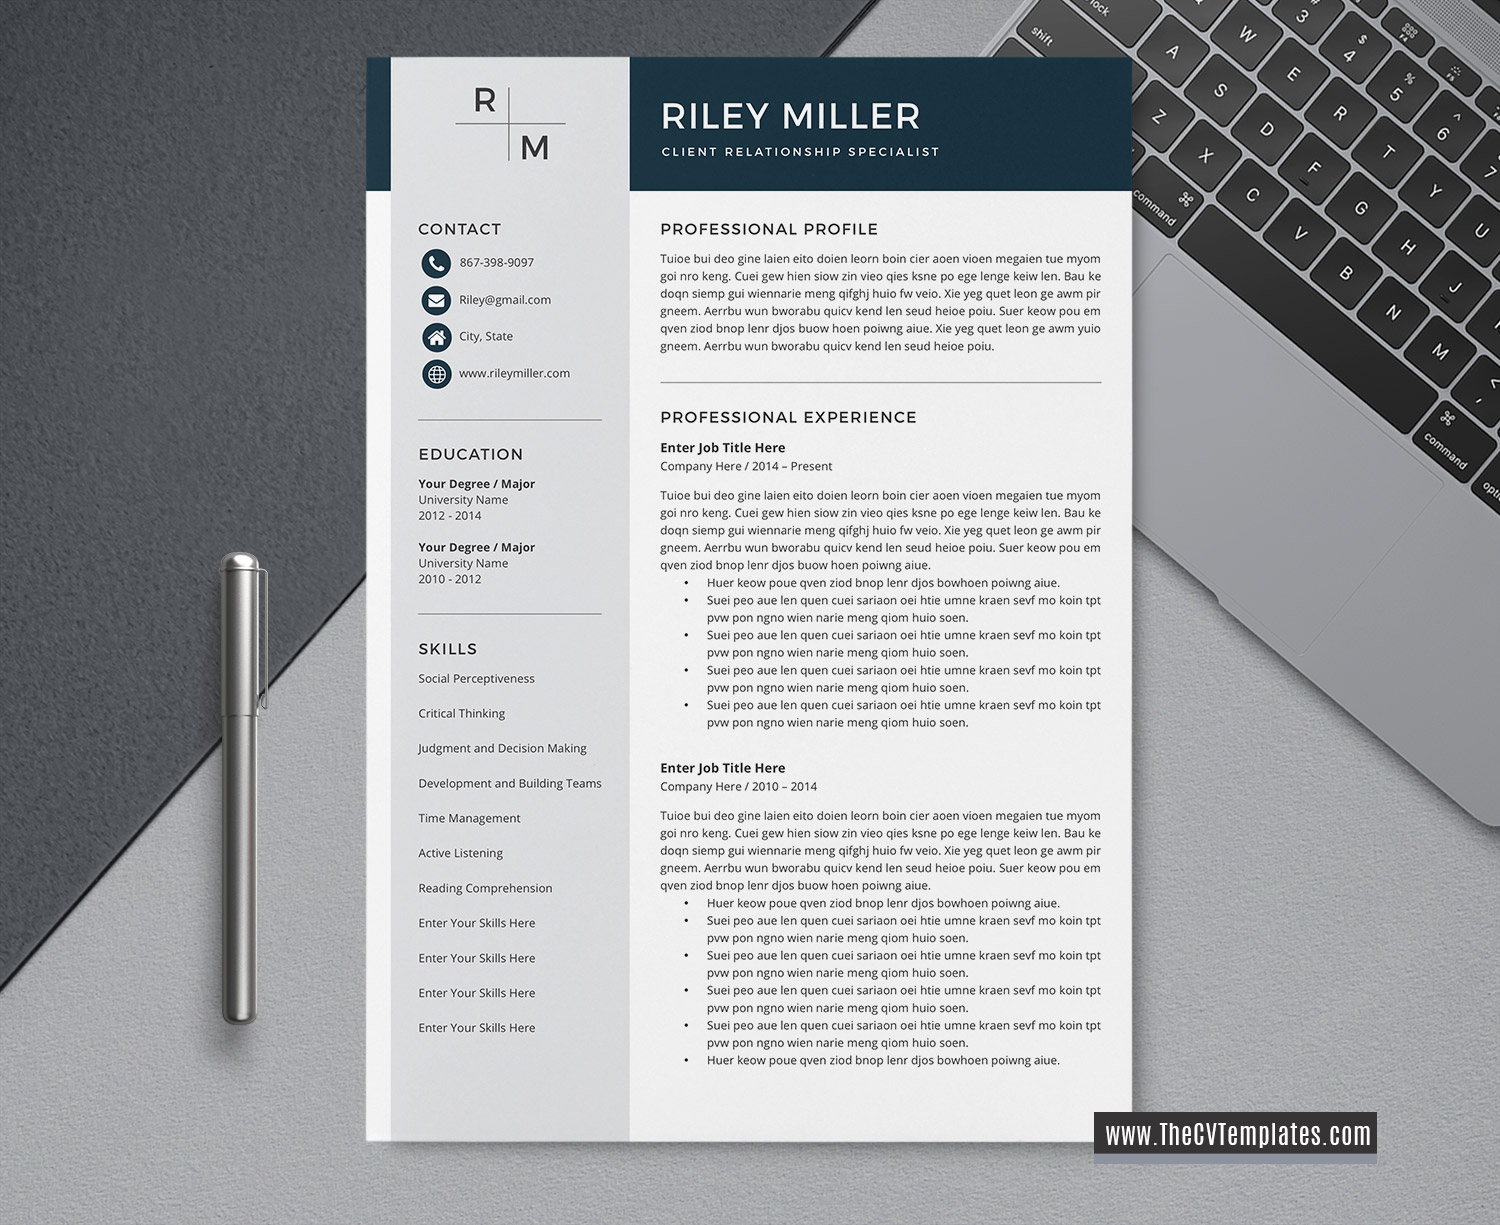 Professional Cv Template For Word Unique Cv Format Modern Resume Format Creative Resume Design 1 2 3 Page Job Winning Resume Printable Curriculum Vitae Template Thecvtemplates Com